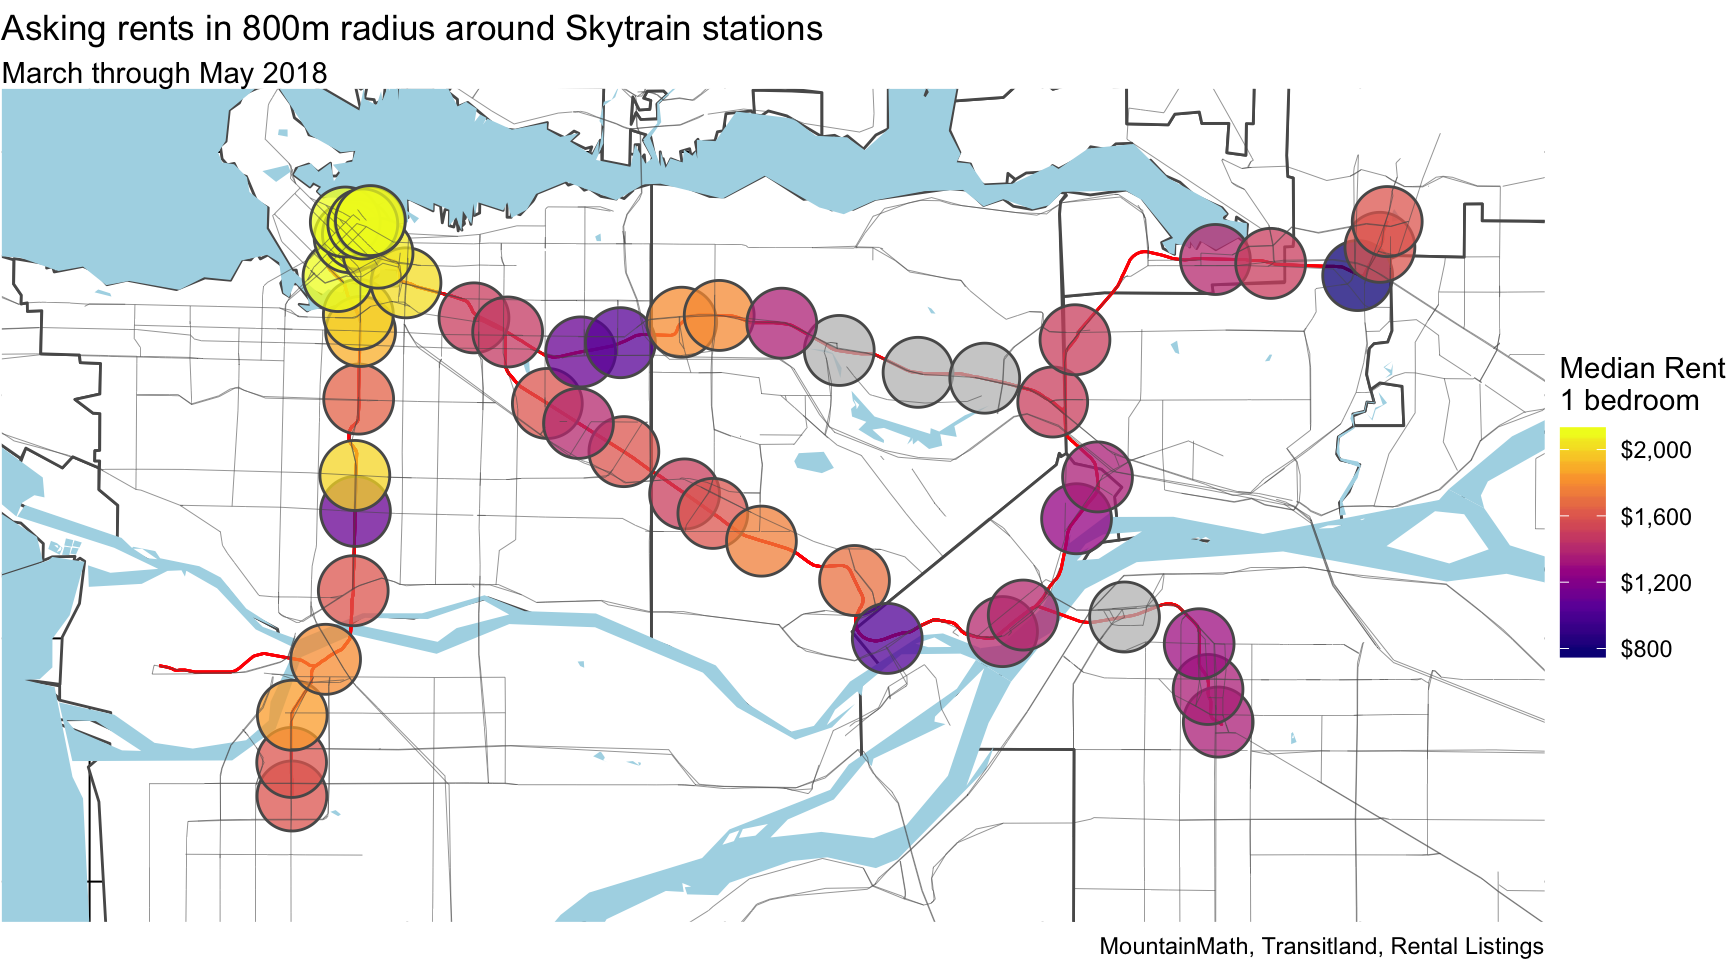 Skytrain rents on piccadilly line map, c-train map, evergreen line, dubai metro, union map, public transport, washington metro, airport map, sunderland map, transit map, north shore mountains map, translink map, sfu map, canada line, polson mt map, bay area rapid transit, chinatown map, chao phraya river map, shanghai metro, marc train map, bc ferries map, s-bahn map, massachusetts bay transportation authority map, light rail, victoria map, university of british columbia map, mexico city metro, west coast express, trimet map, rapid transit, beijing subway, expo line, people mover, car map, montreal metro,